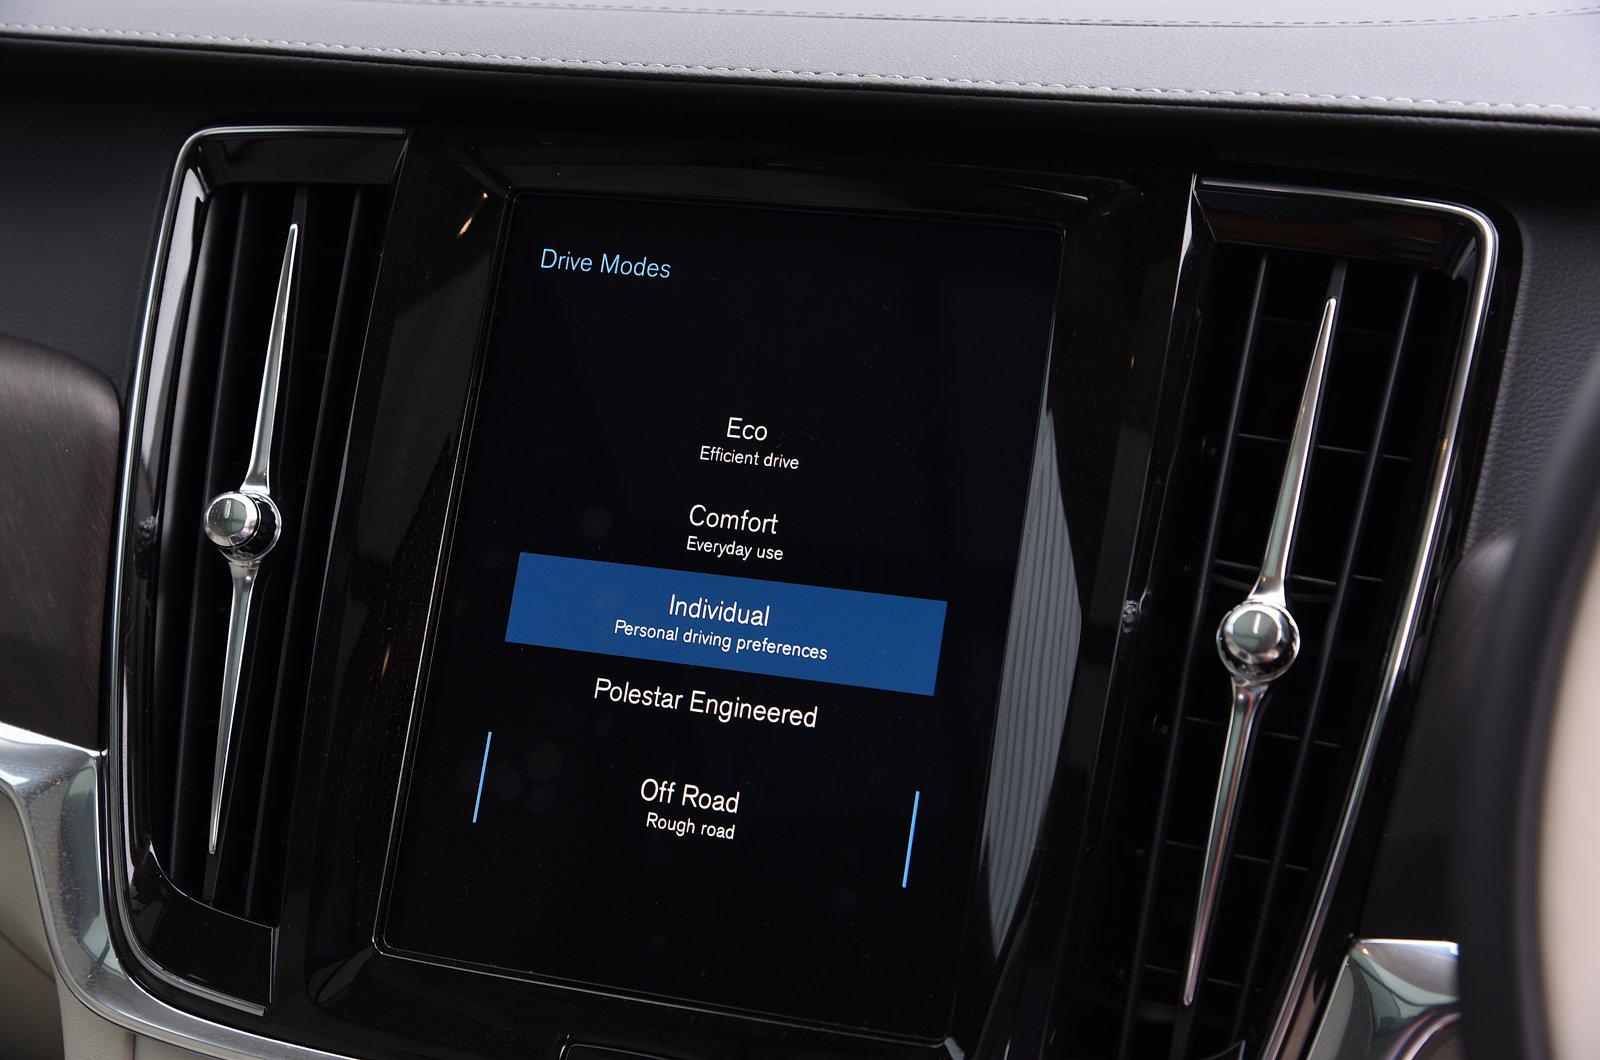 LT Volvo V90 Cross Country driving modes on touchscreen